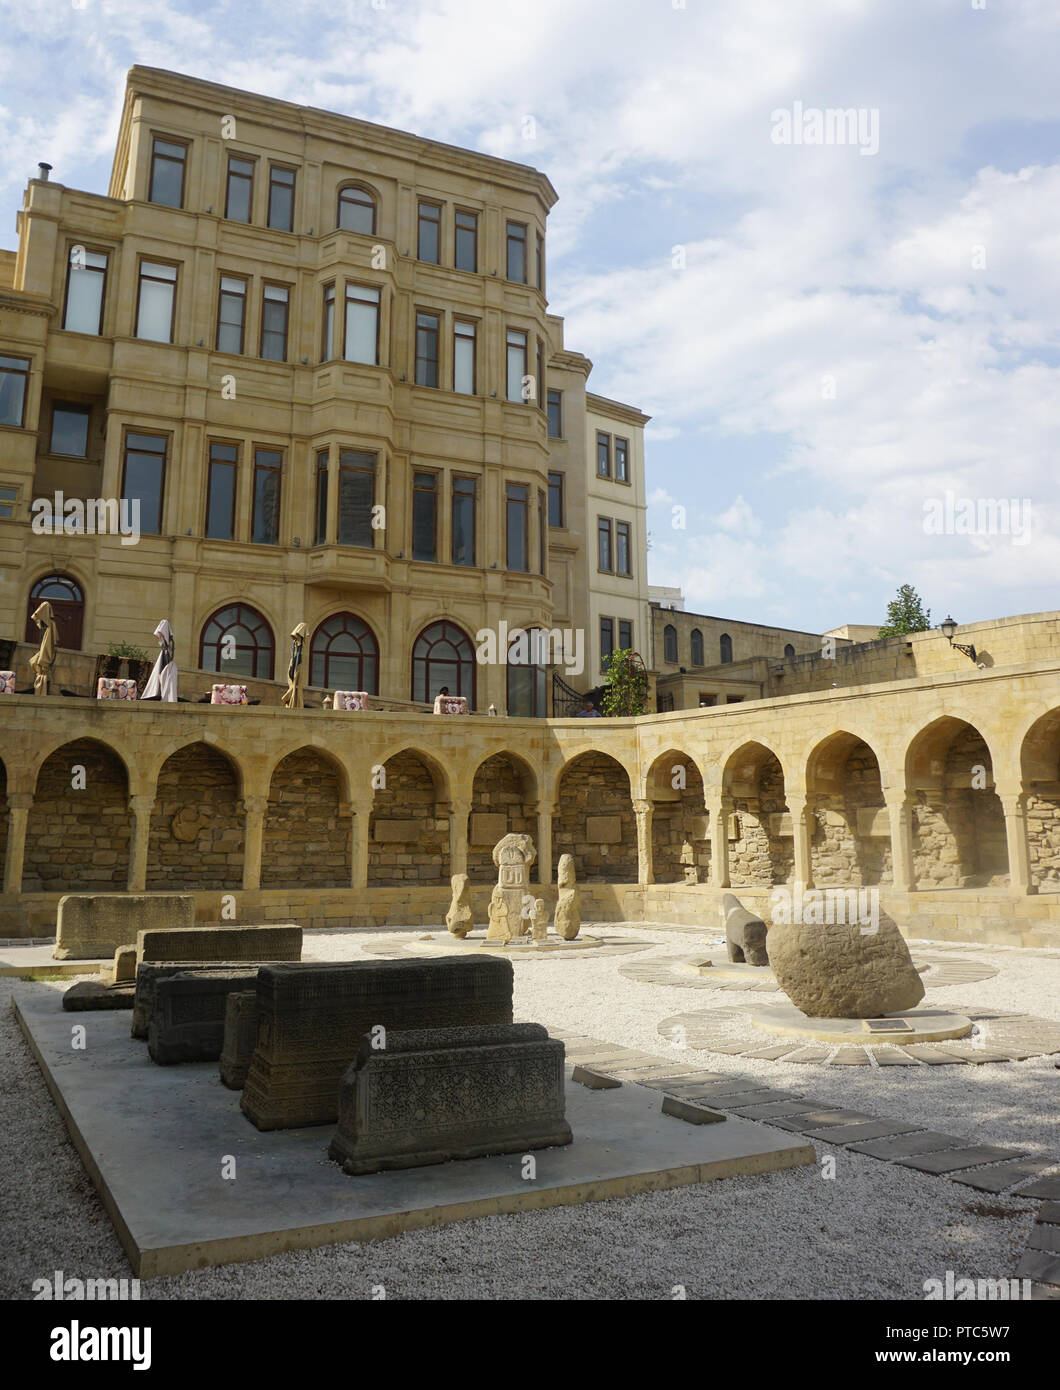 Baku Open Air Museum with Grave Stones and Columns - Stock Image